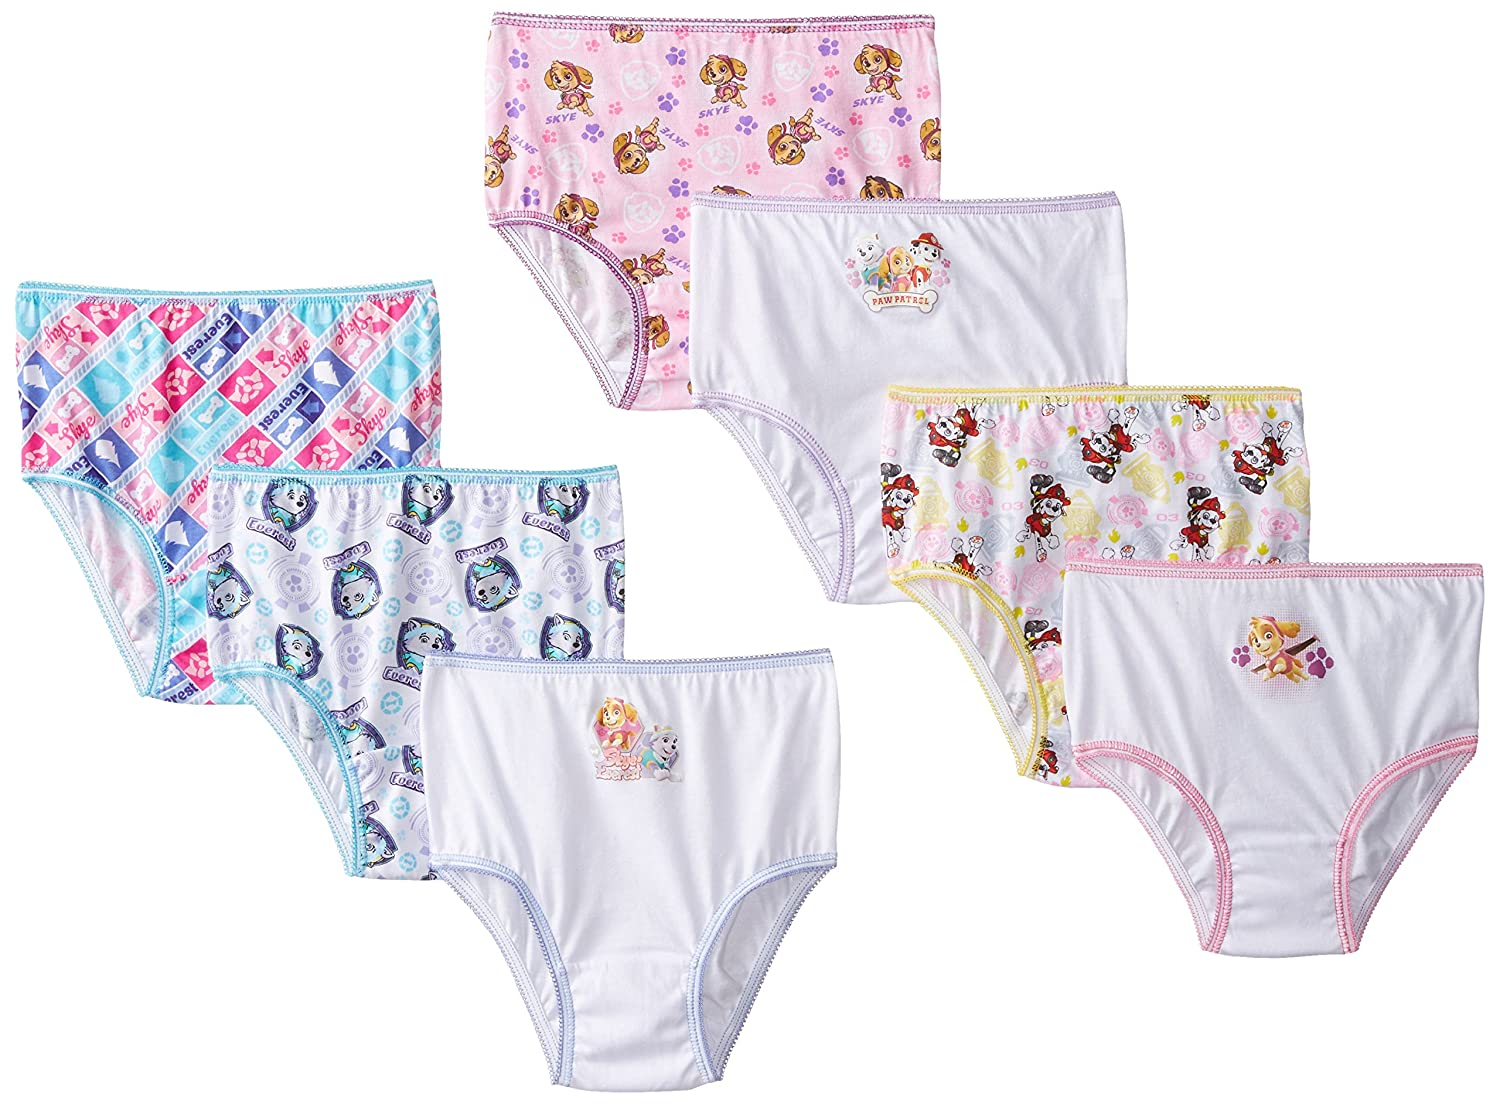 Nickelodeon Paw Patrol - 7 Pack Girls Underwear Briefs TGUP3705